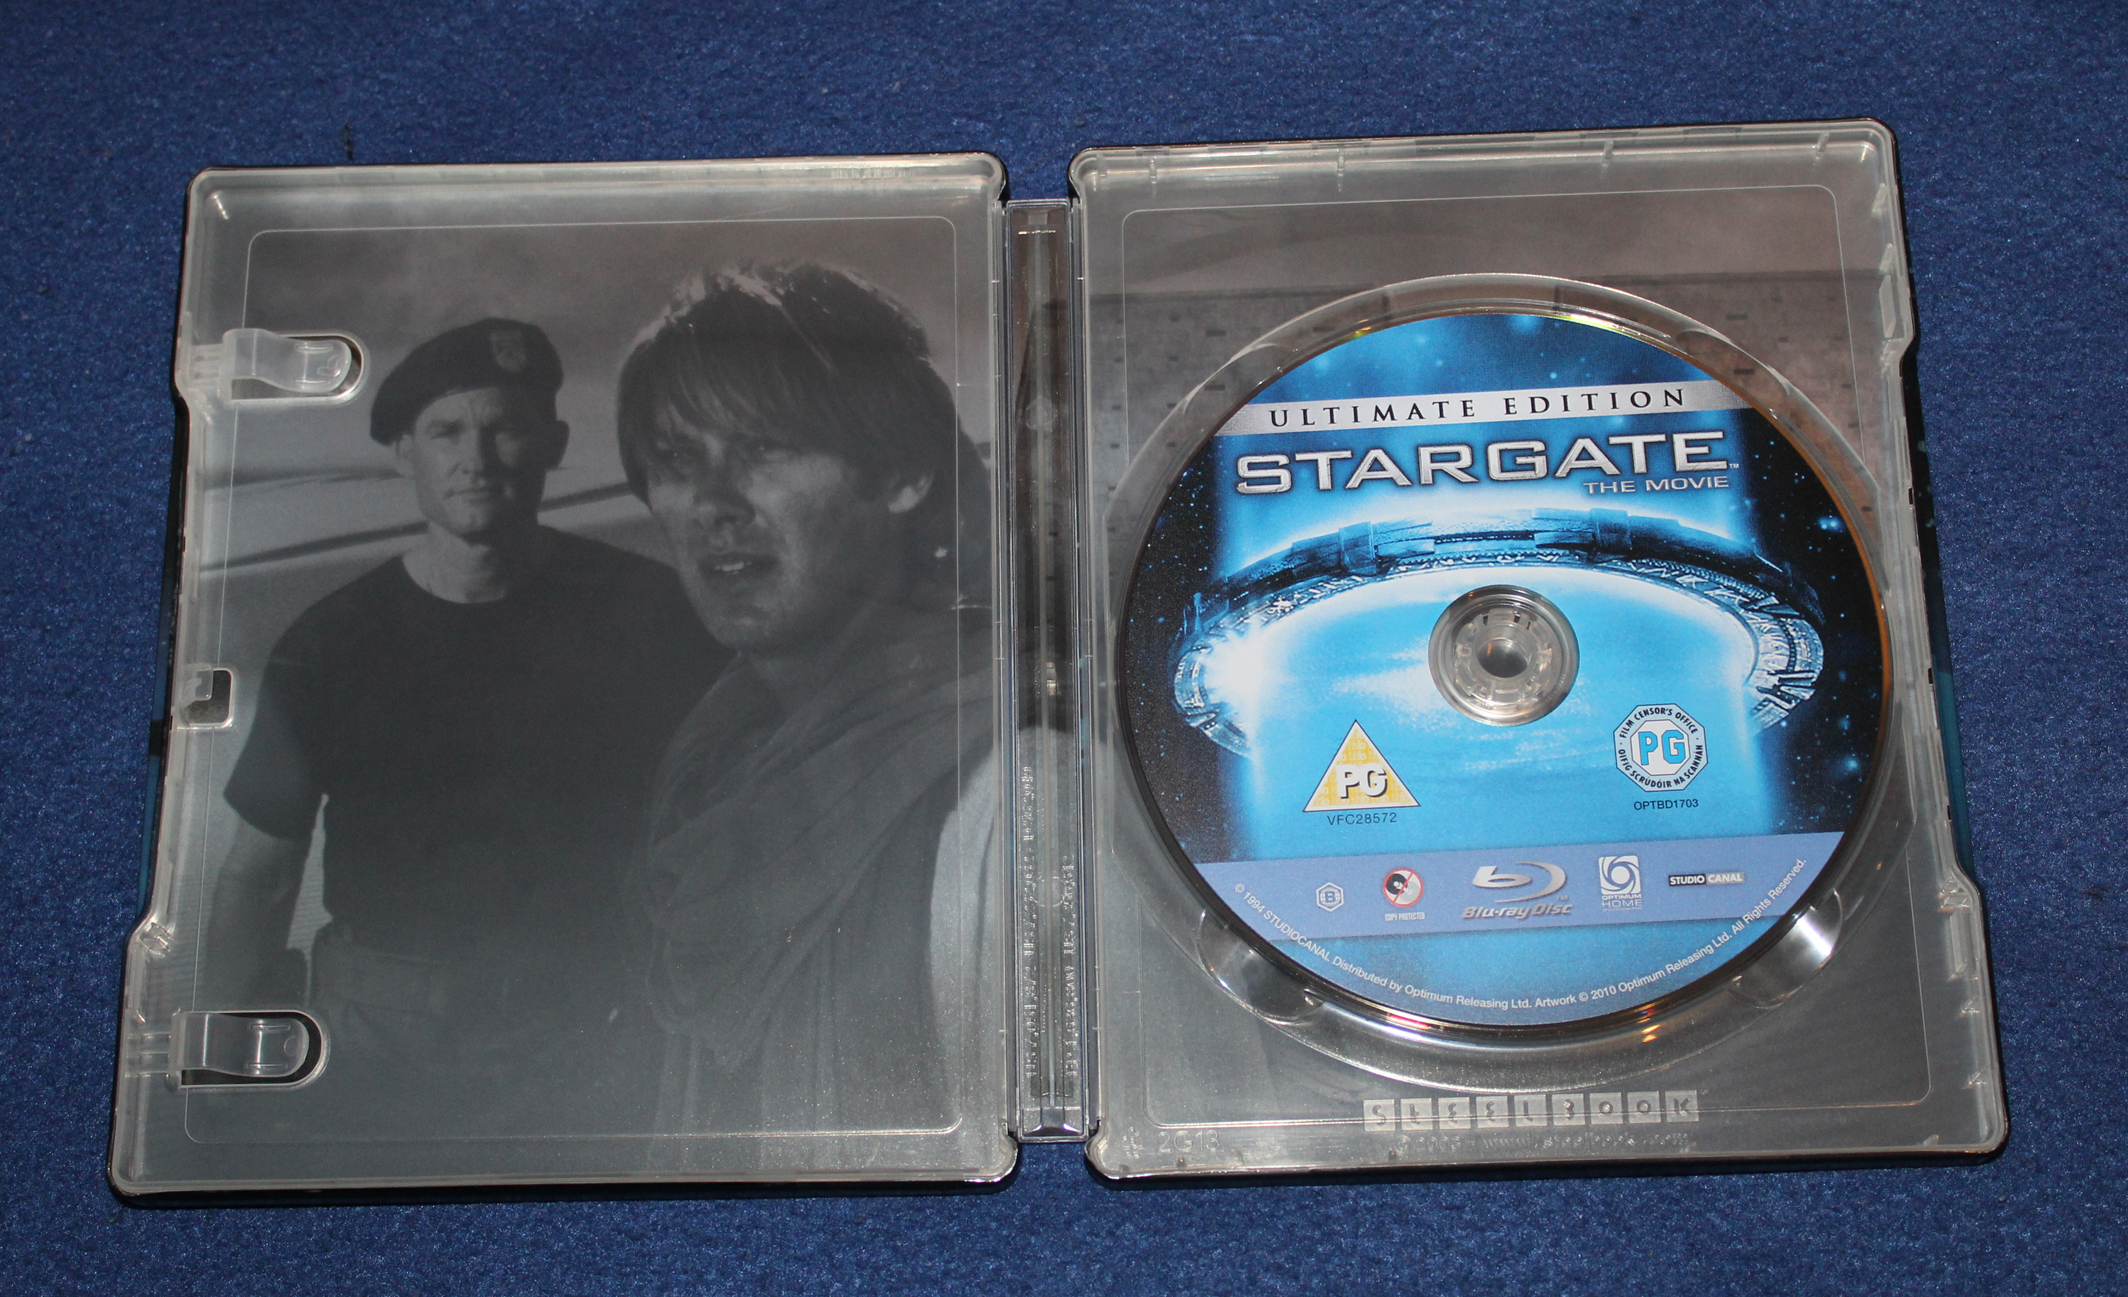 Stargate 20th Anniversary Edition - Exclusive Limited Edition Steelbook - 006